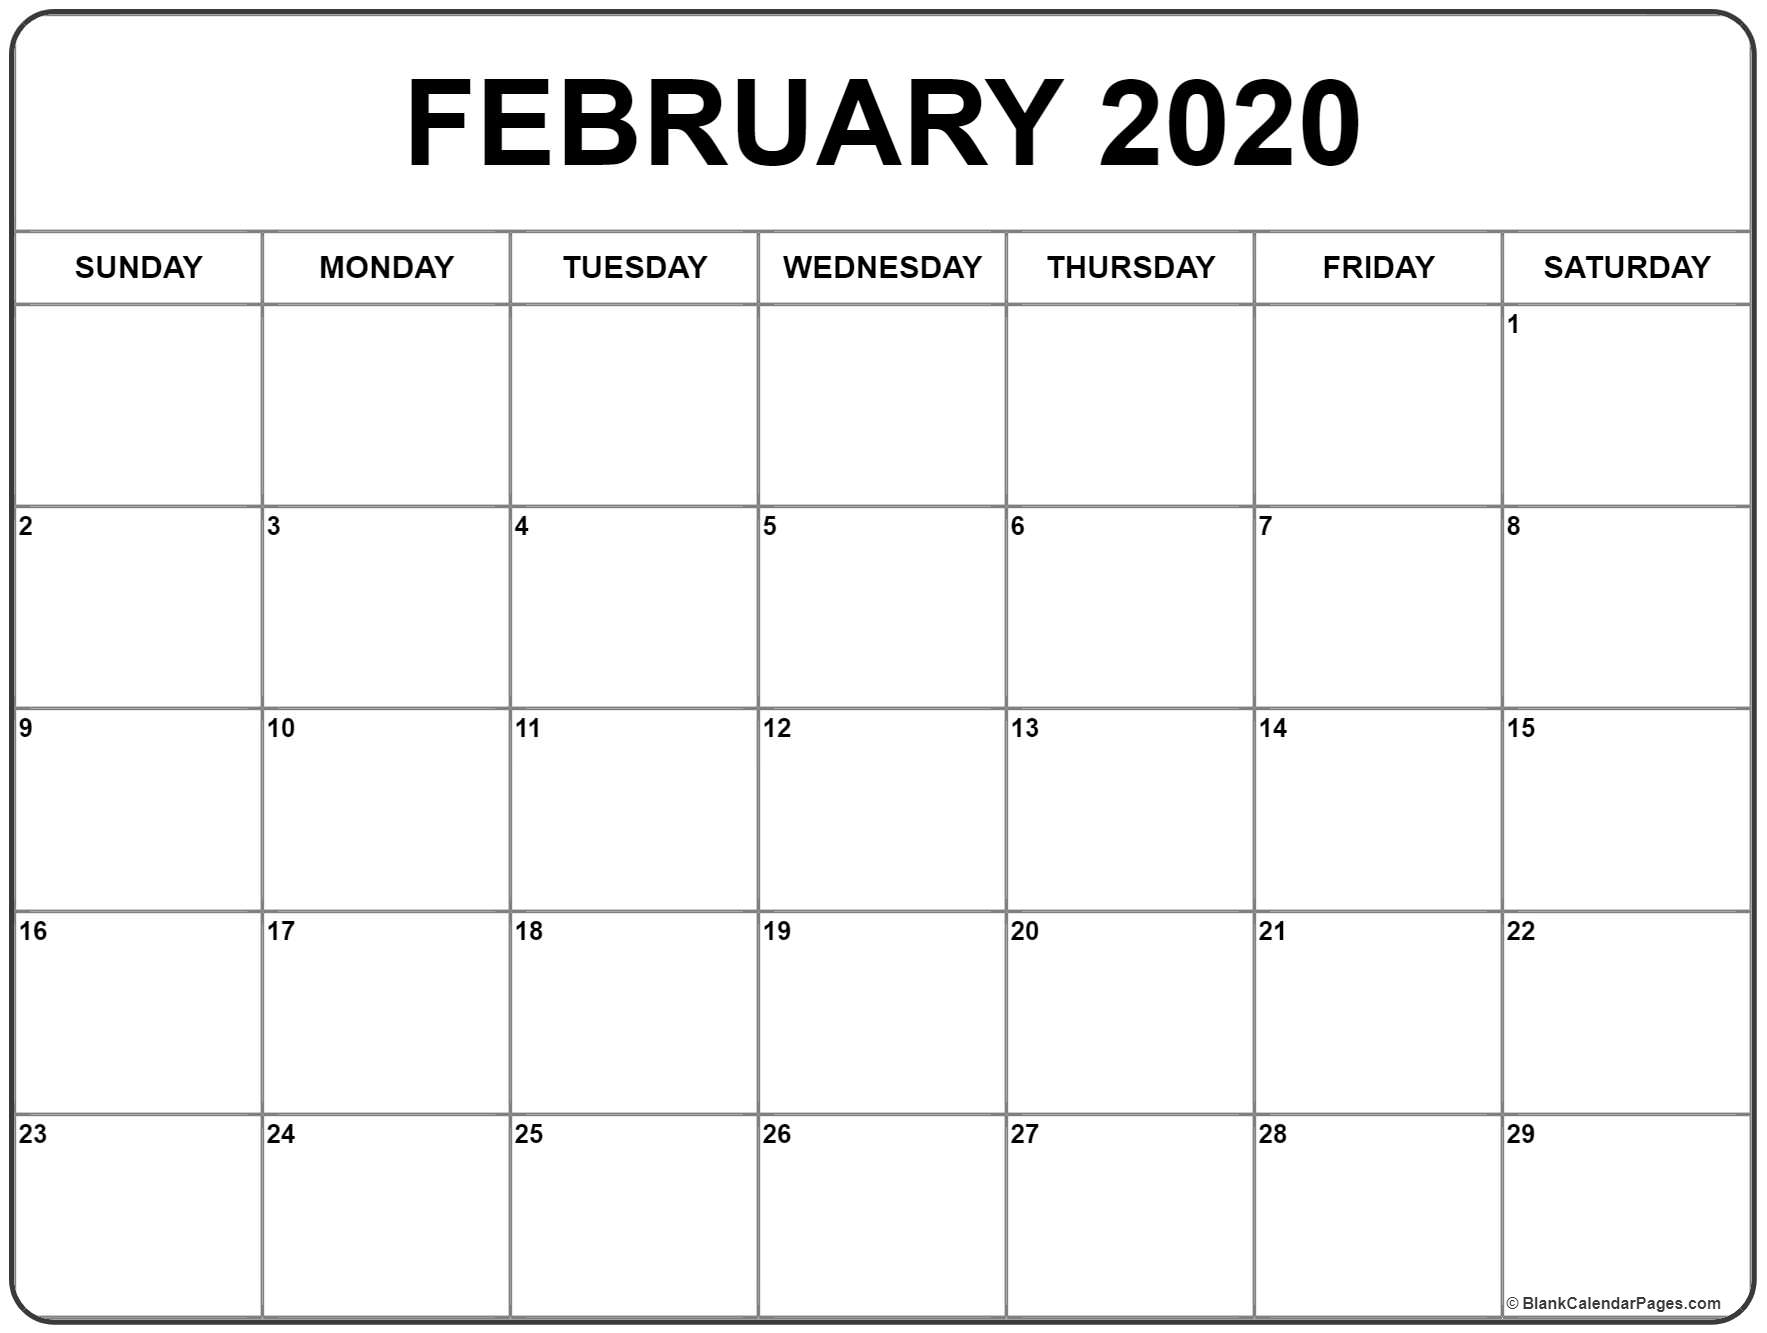 February 2020 Calendar | Free Printable Monthly Calendars inside Free Printable Calendar For 2020 With No Download